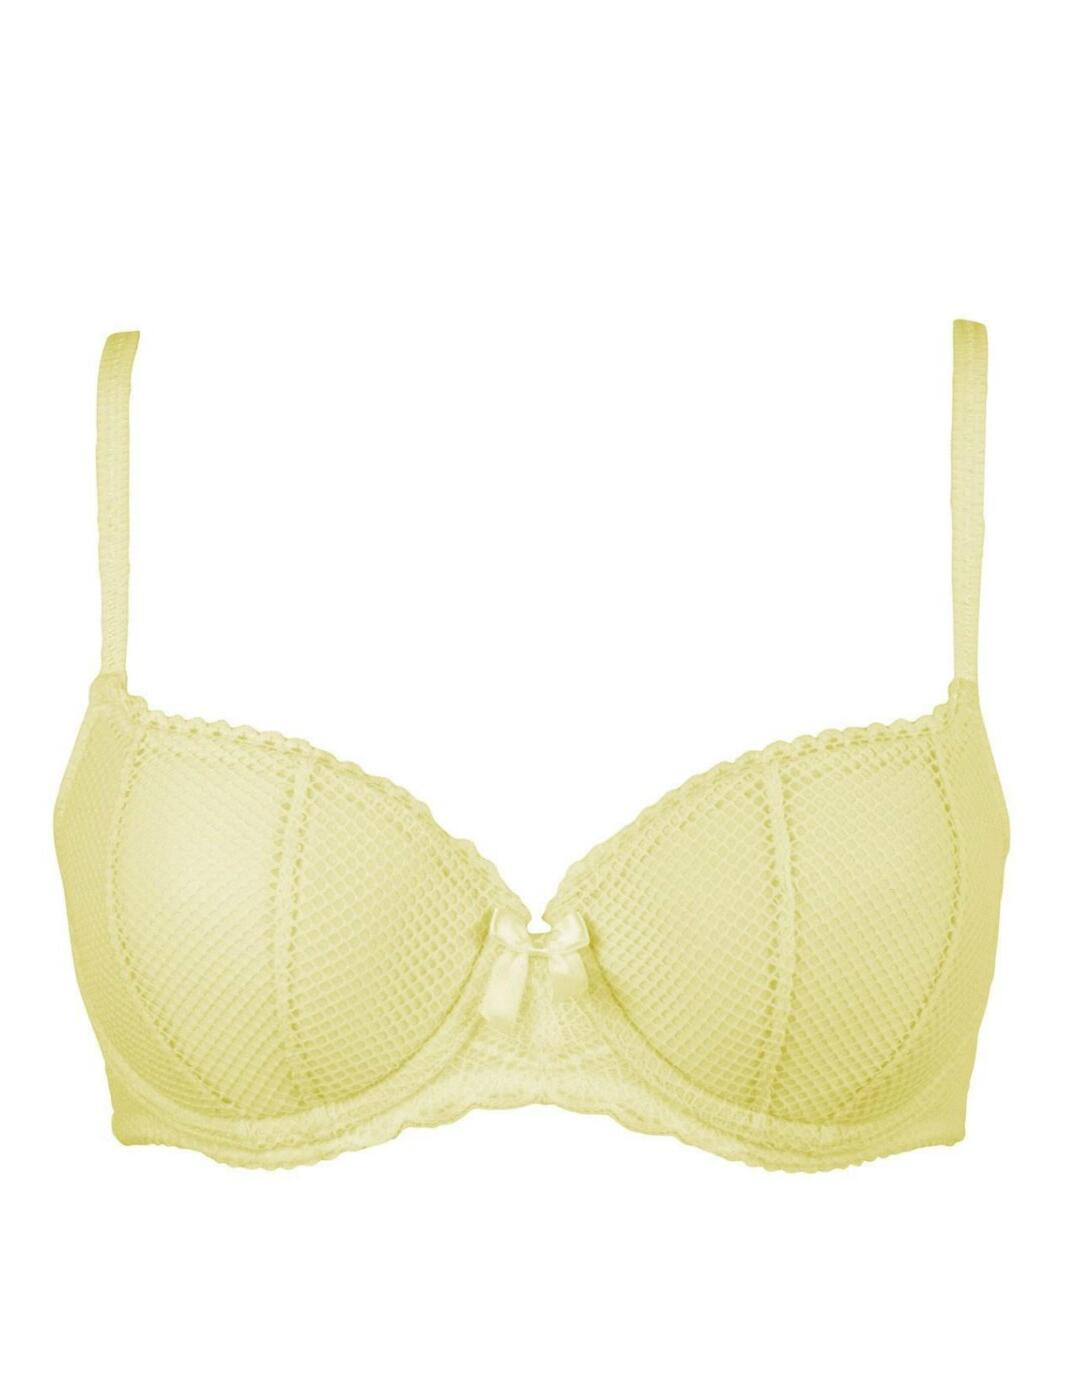 Pour Moi Electra Bra 46000 Underwired Lightly Padded Balcony Womens Lingerie